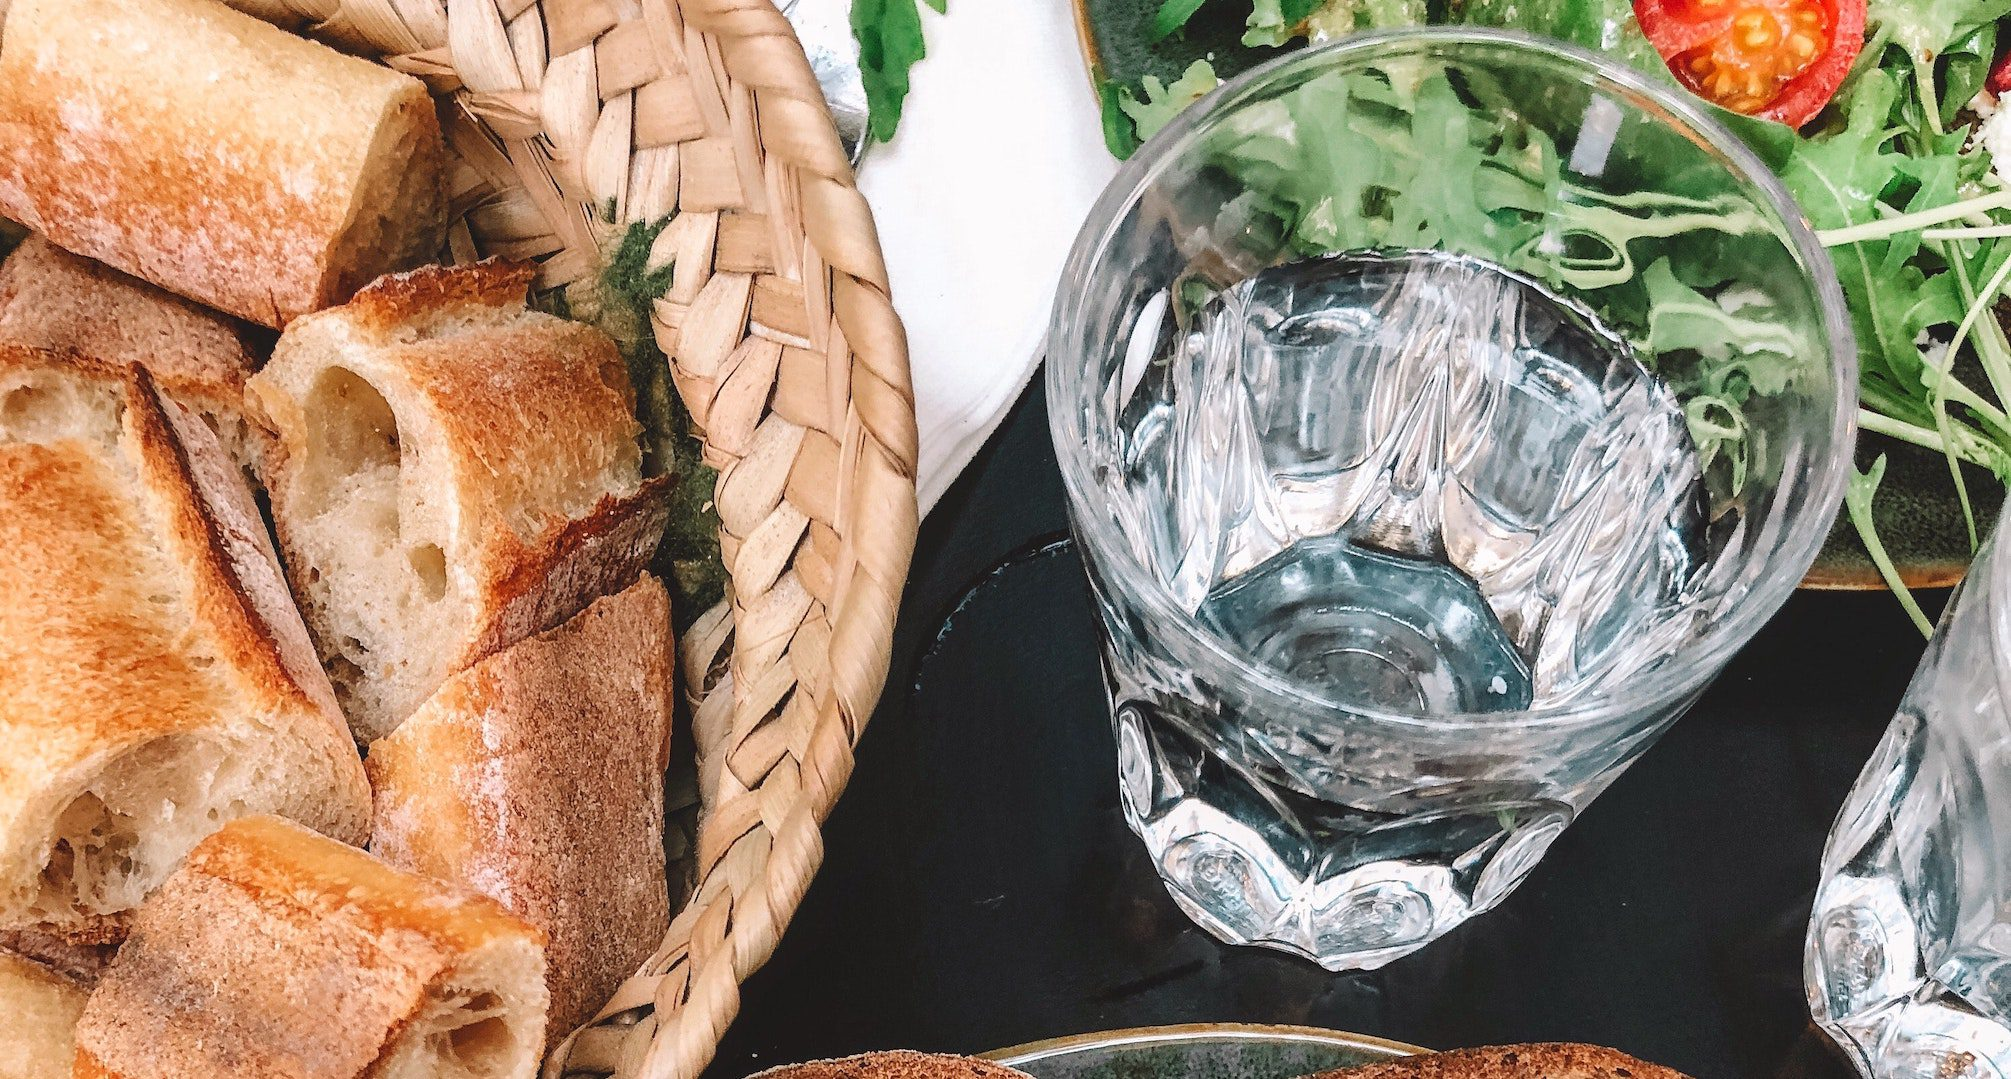 Water glass and bread